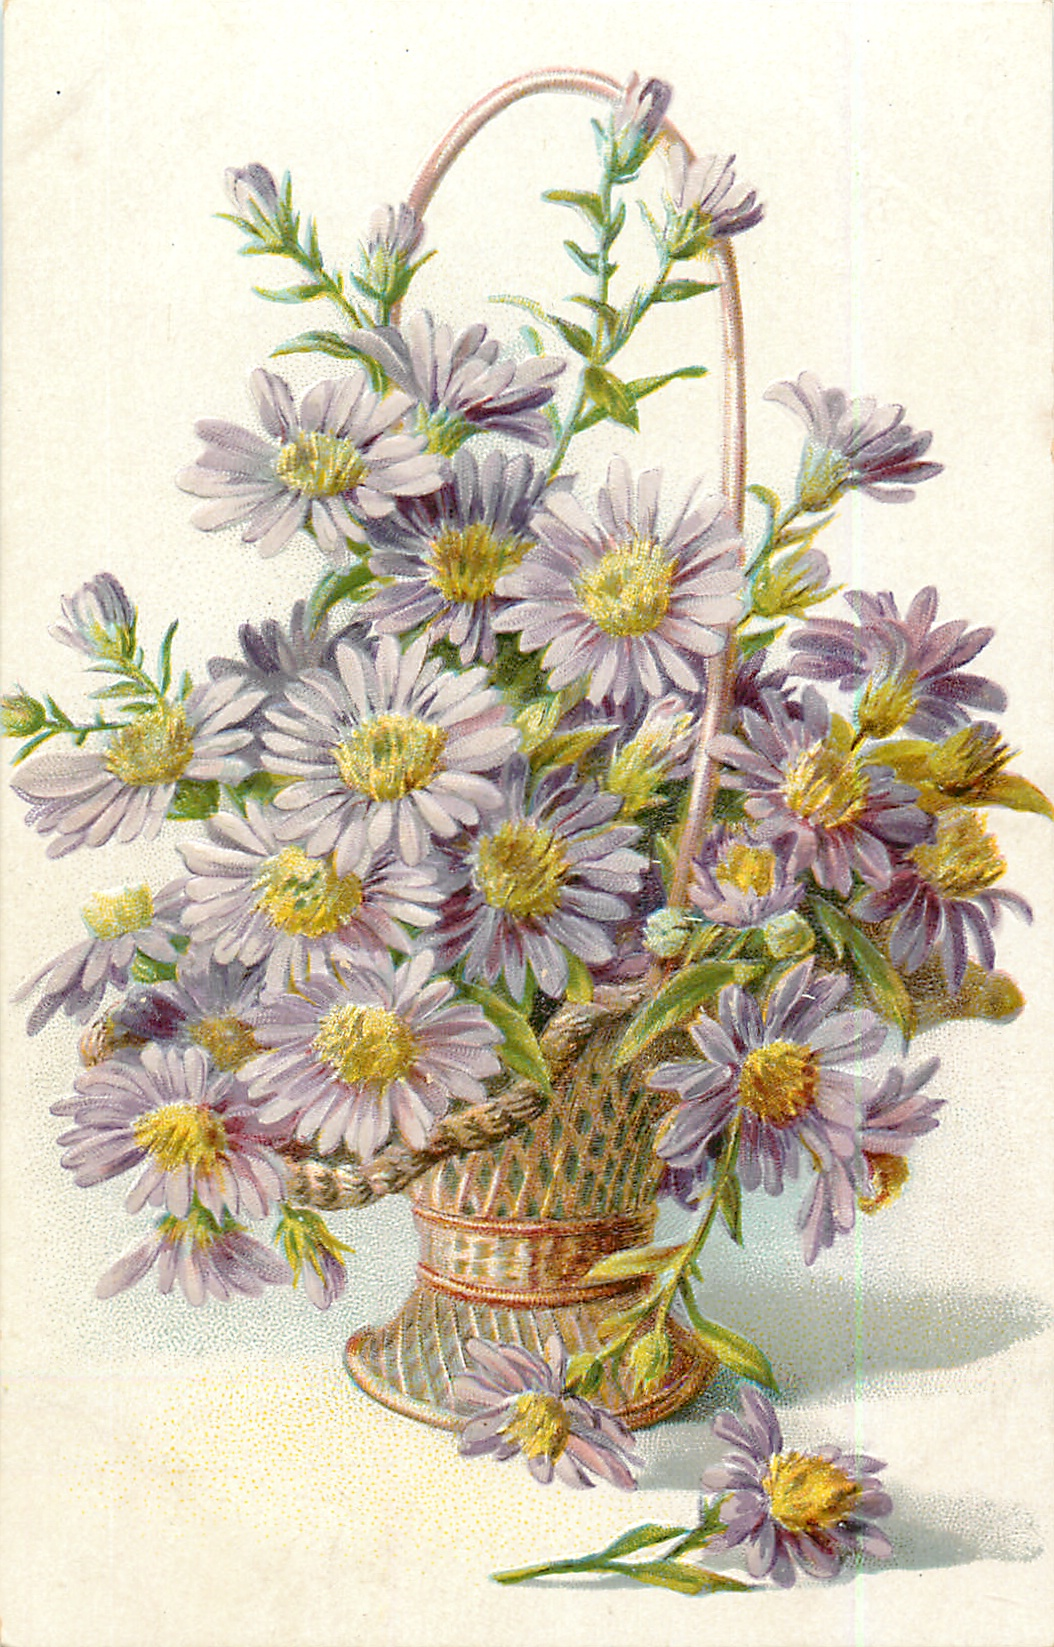 asters, violet flowers with yellow centers in wicker ...